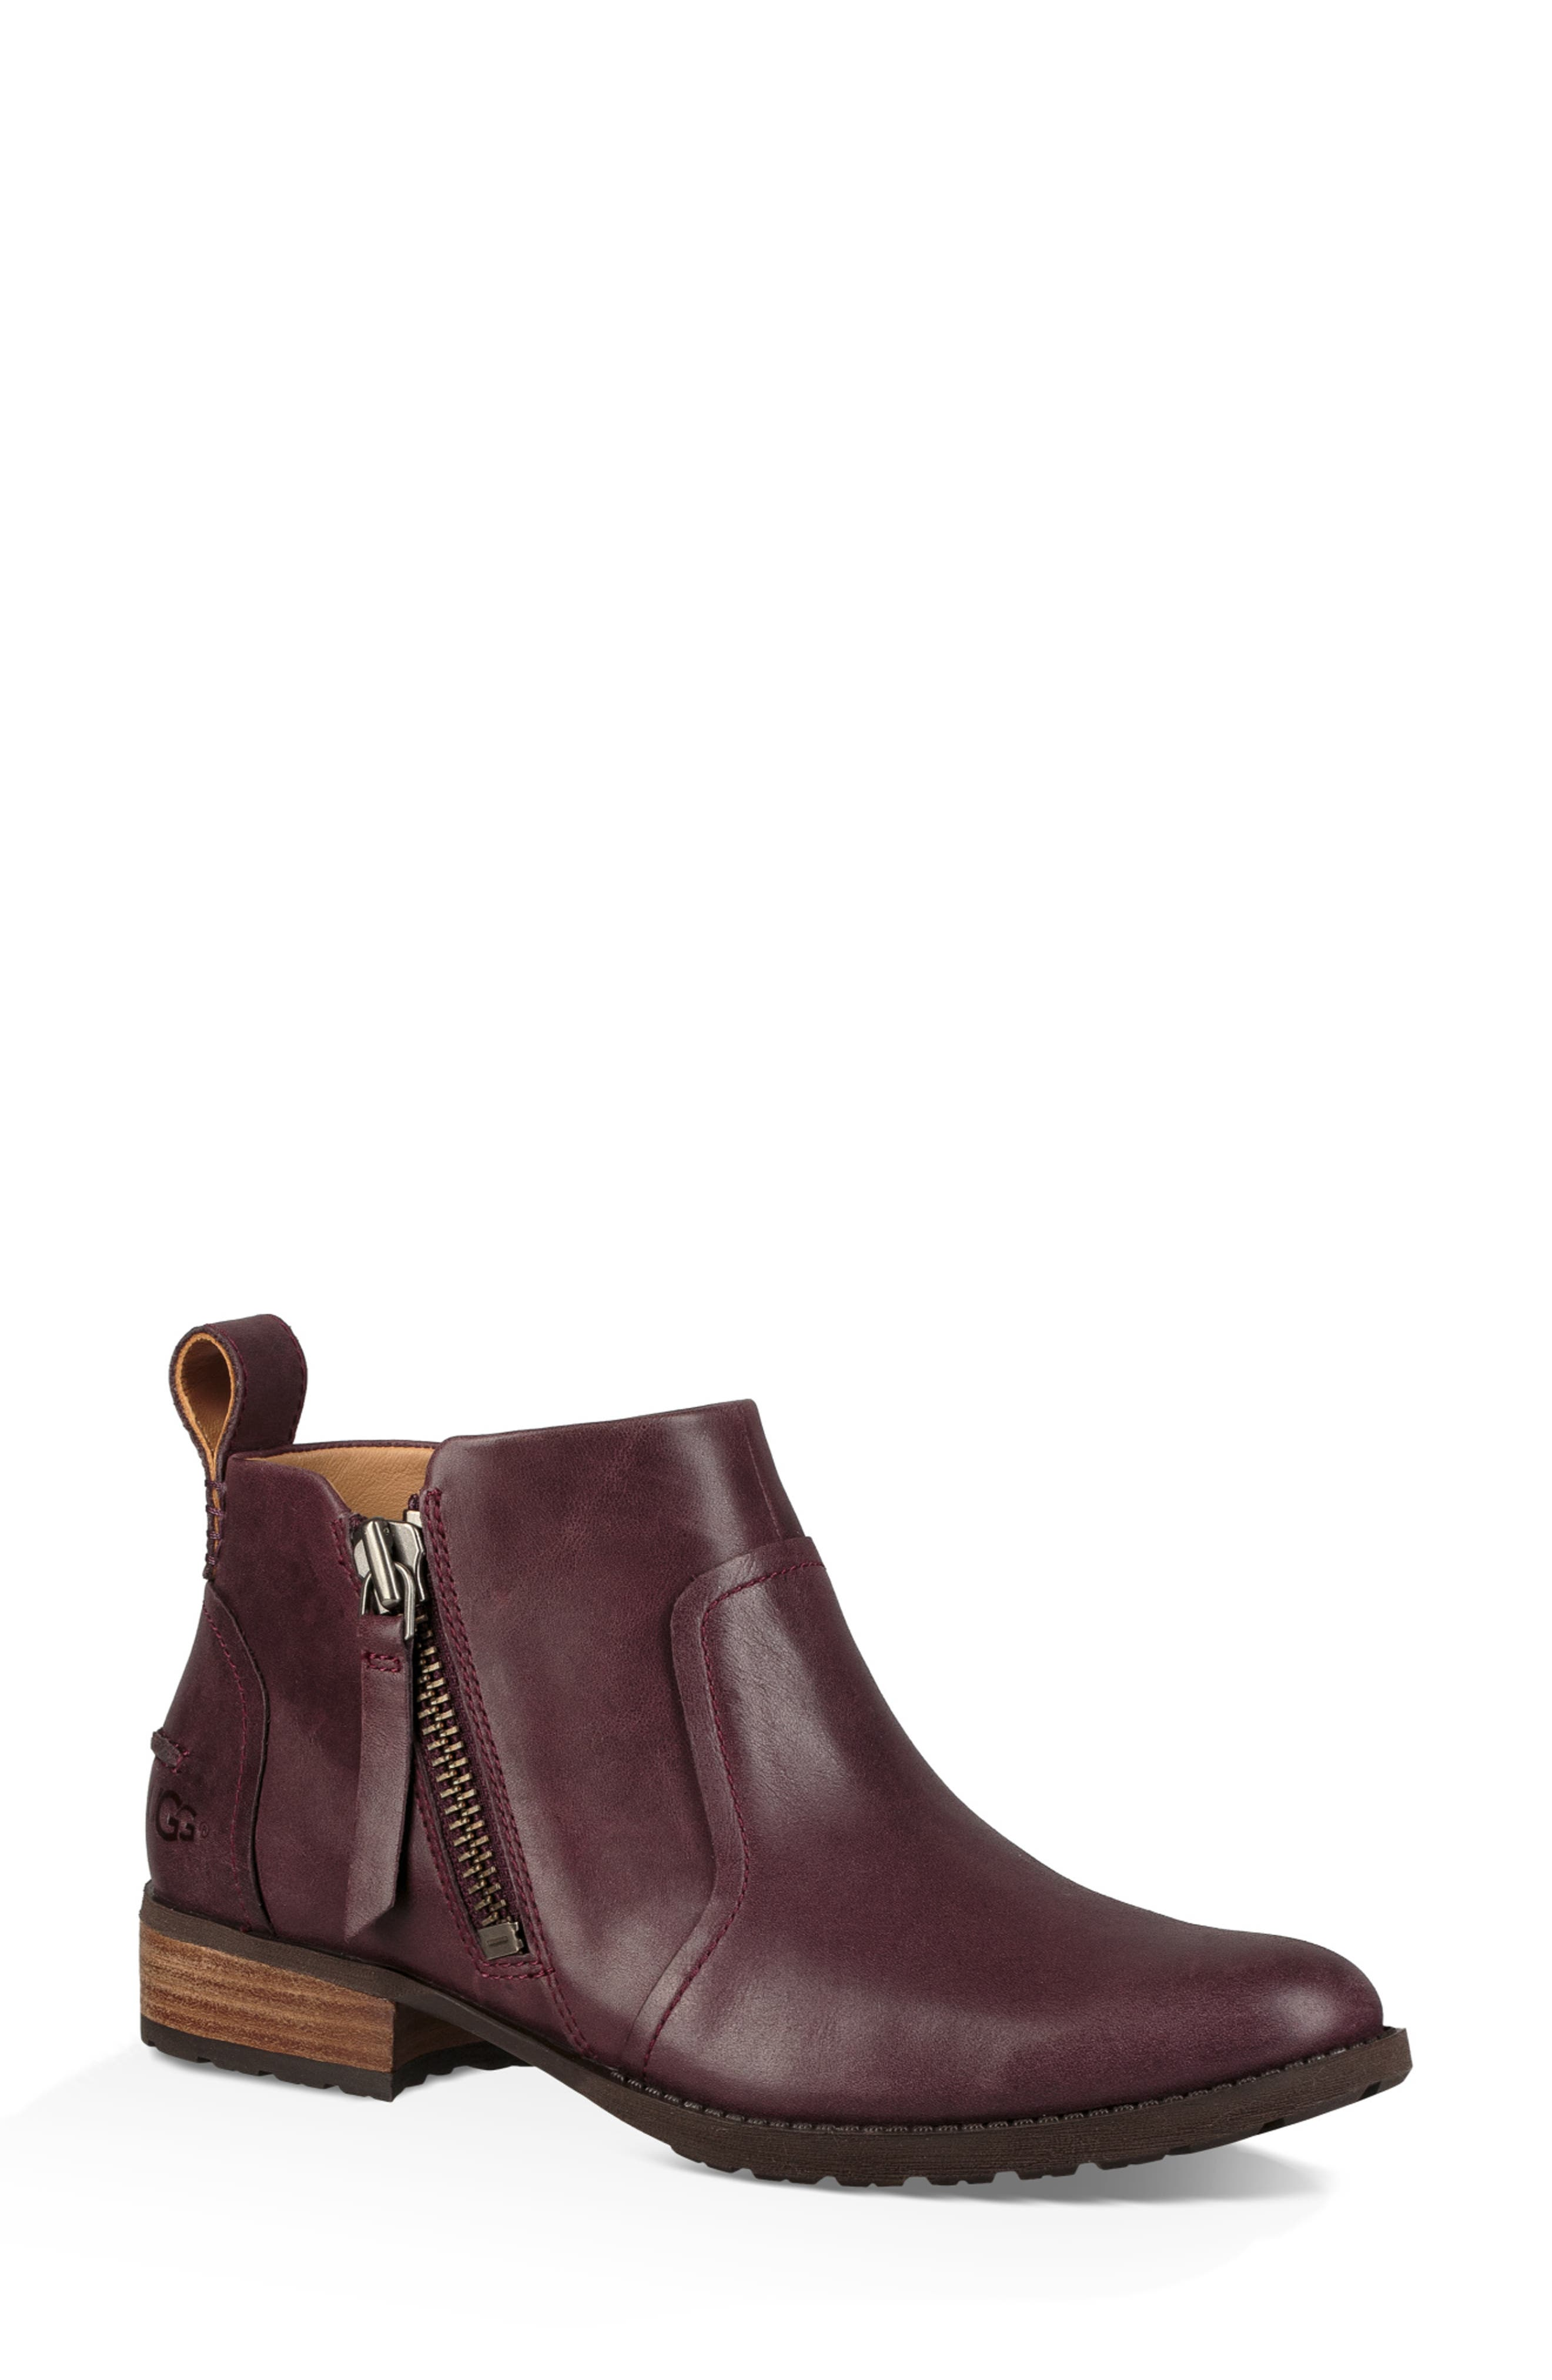 Aureo Bootie,                             Main thumbnail 1, color,                             OXBLOOD LEATHER